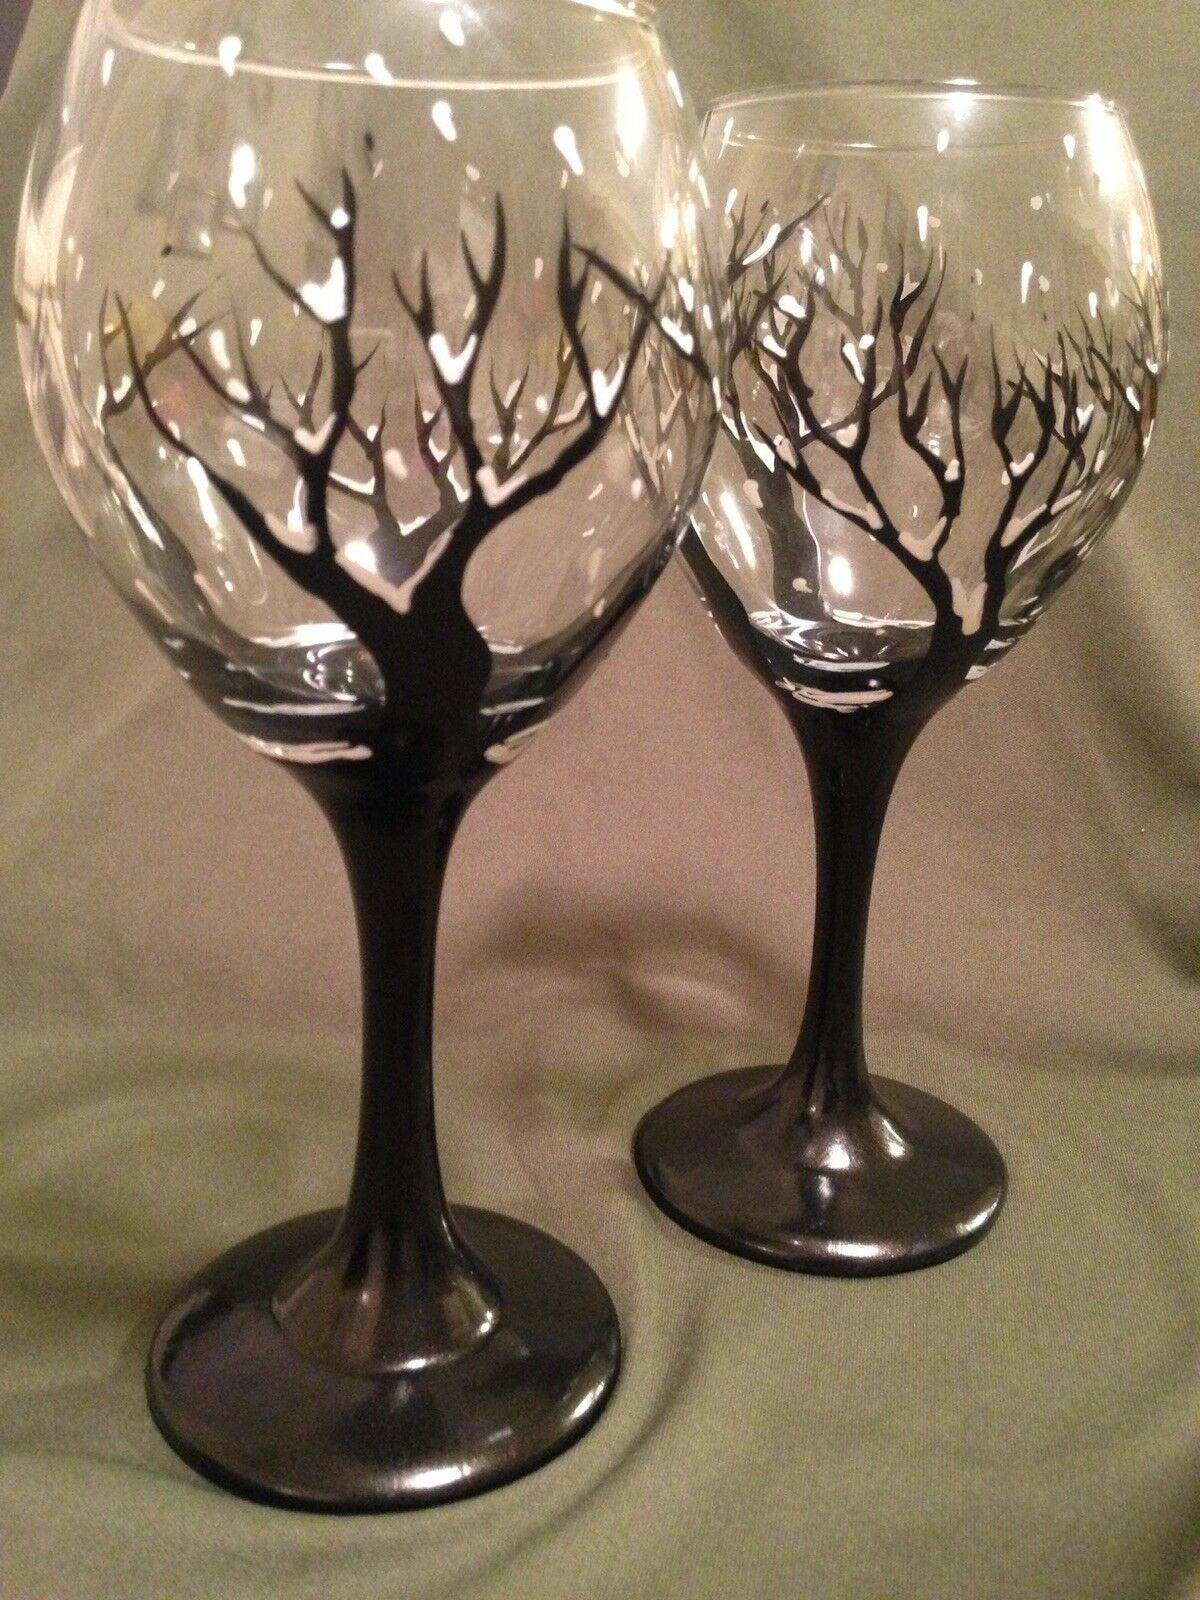 Set Of 2 Hand Painted Wine Glass Winter Trees Dishwasher Save In Top Rack Gift Wine Gla Hand Painted Wine Glass Painted Wine Glass Hand Painted Wine Glasses